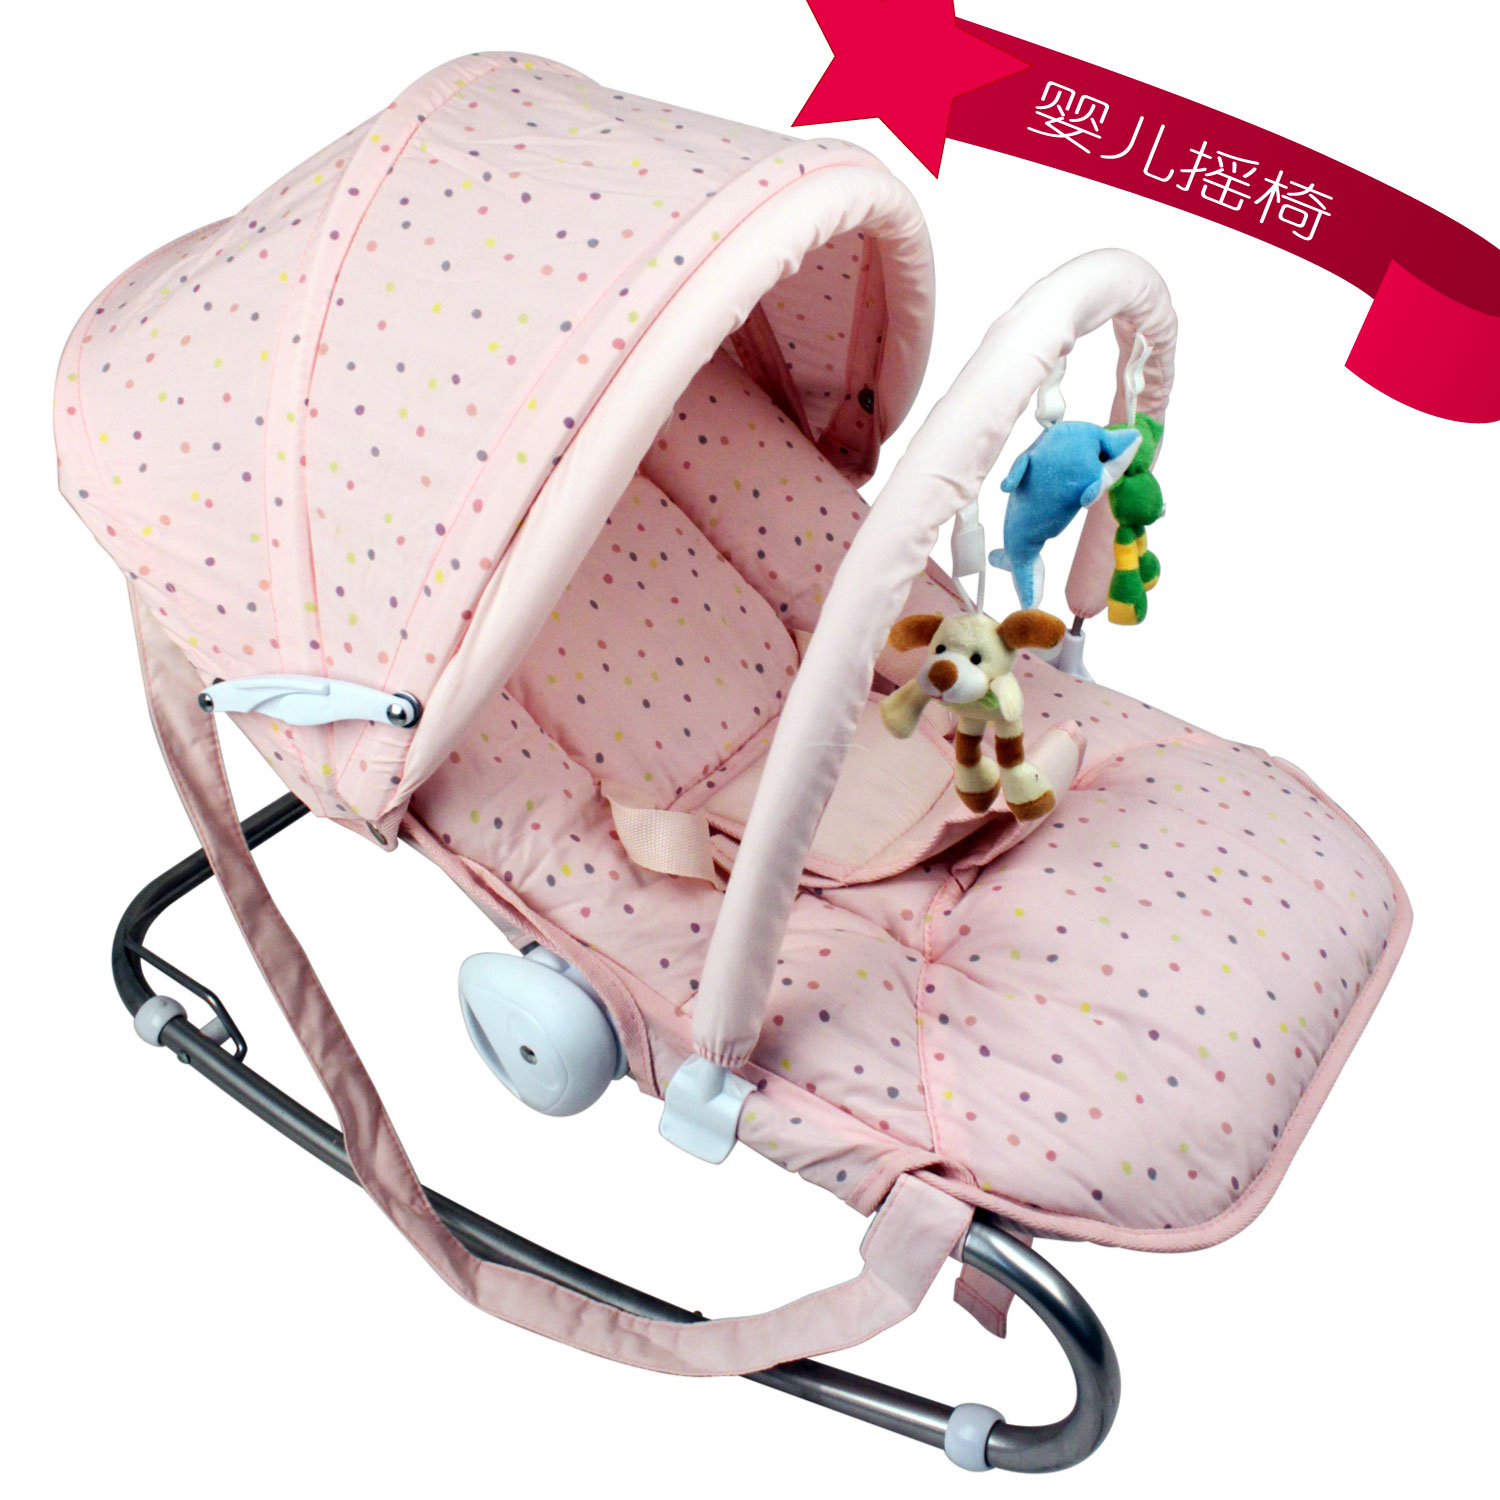 Electric baby rocker chair - 2017 Direct Selling Top Fashion 18kg Metal Print Multifunctional Baby Rocking Chair Cradle Reassure The Chaise Lounge Electric